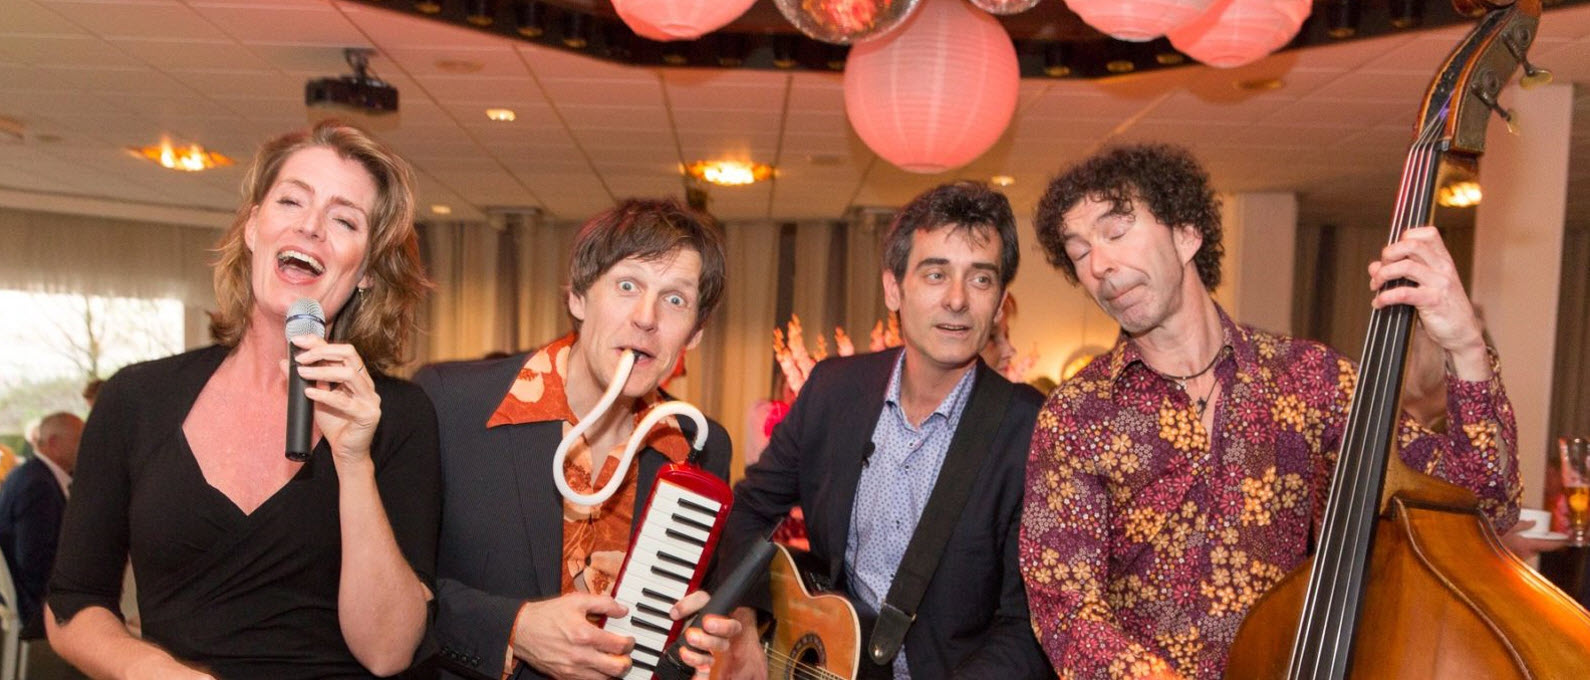 Dag van de Mantelzorg2 - Band Something Else - MVT Rheden